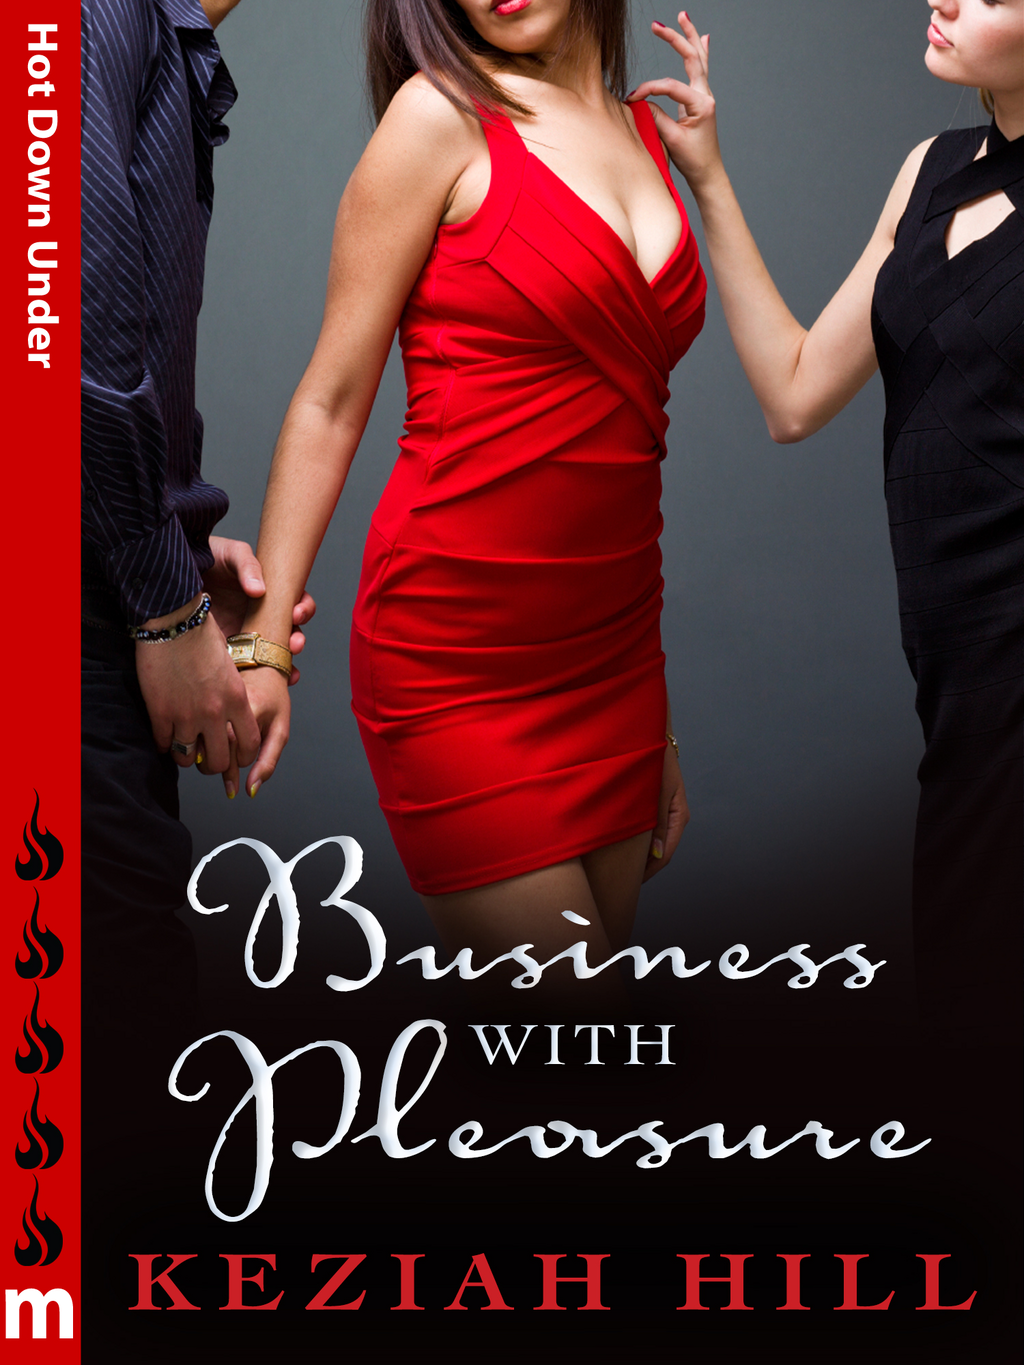 Business with Pleasure: Hot Down Under By: Keziah Hill